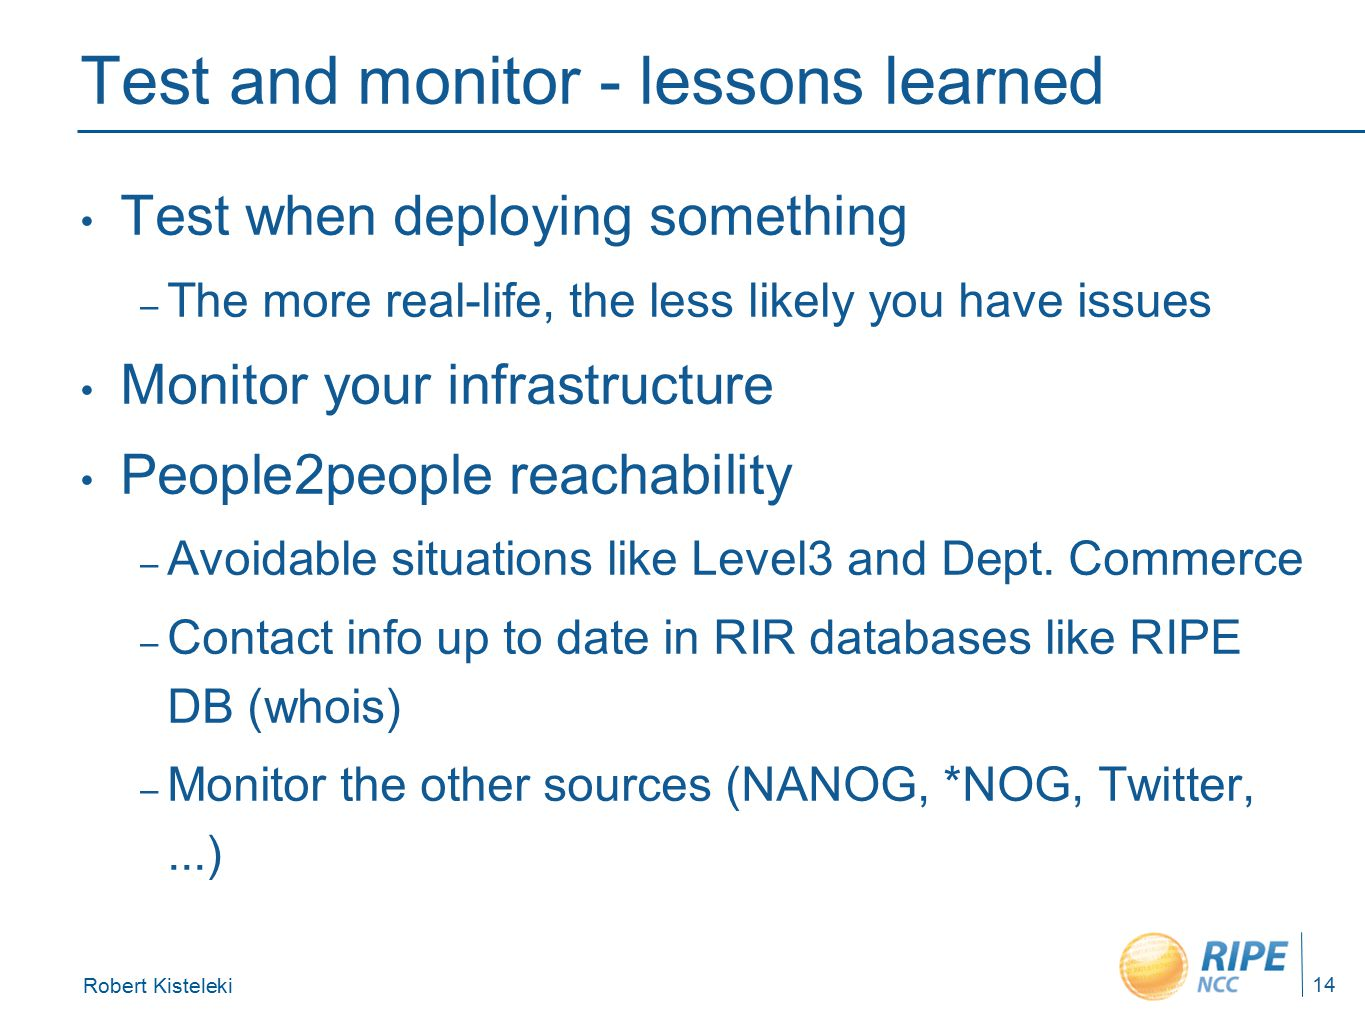 Robert Kisteleki 14 Test and monitor - lessons learned Test when deploying something – The more real-life, the less likely you have issues Monitor your infrastructure People2people reachability – Avoidable situations like Level3 and Dept.